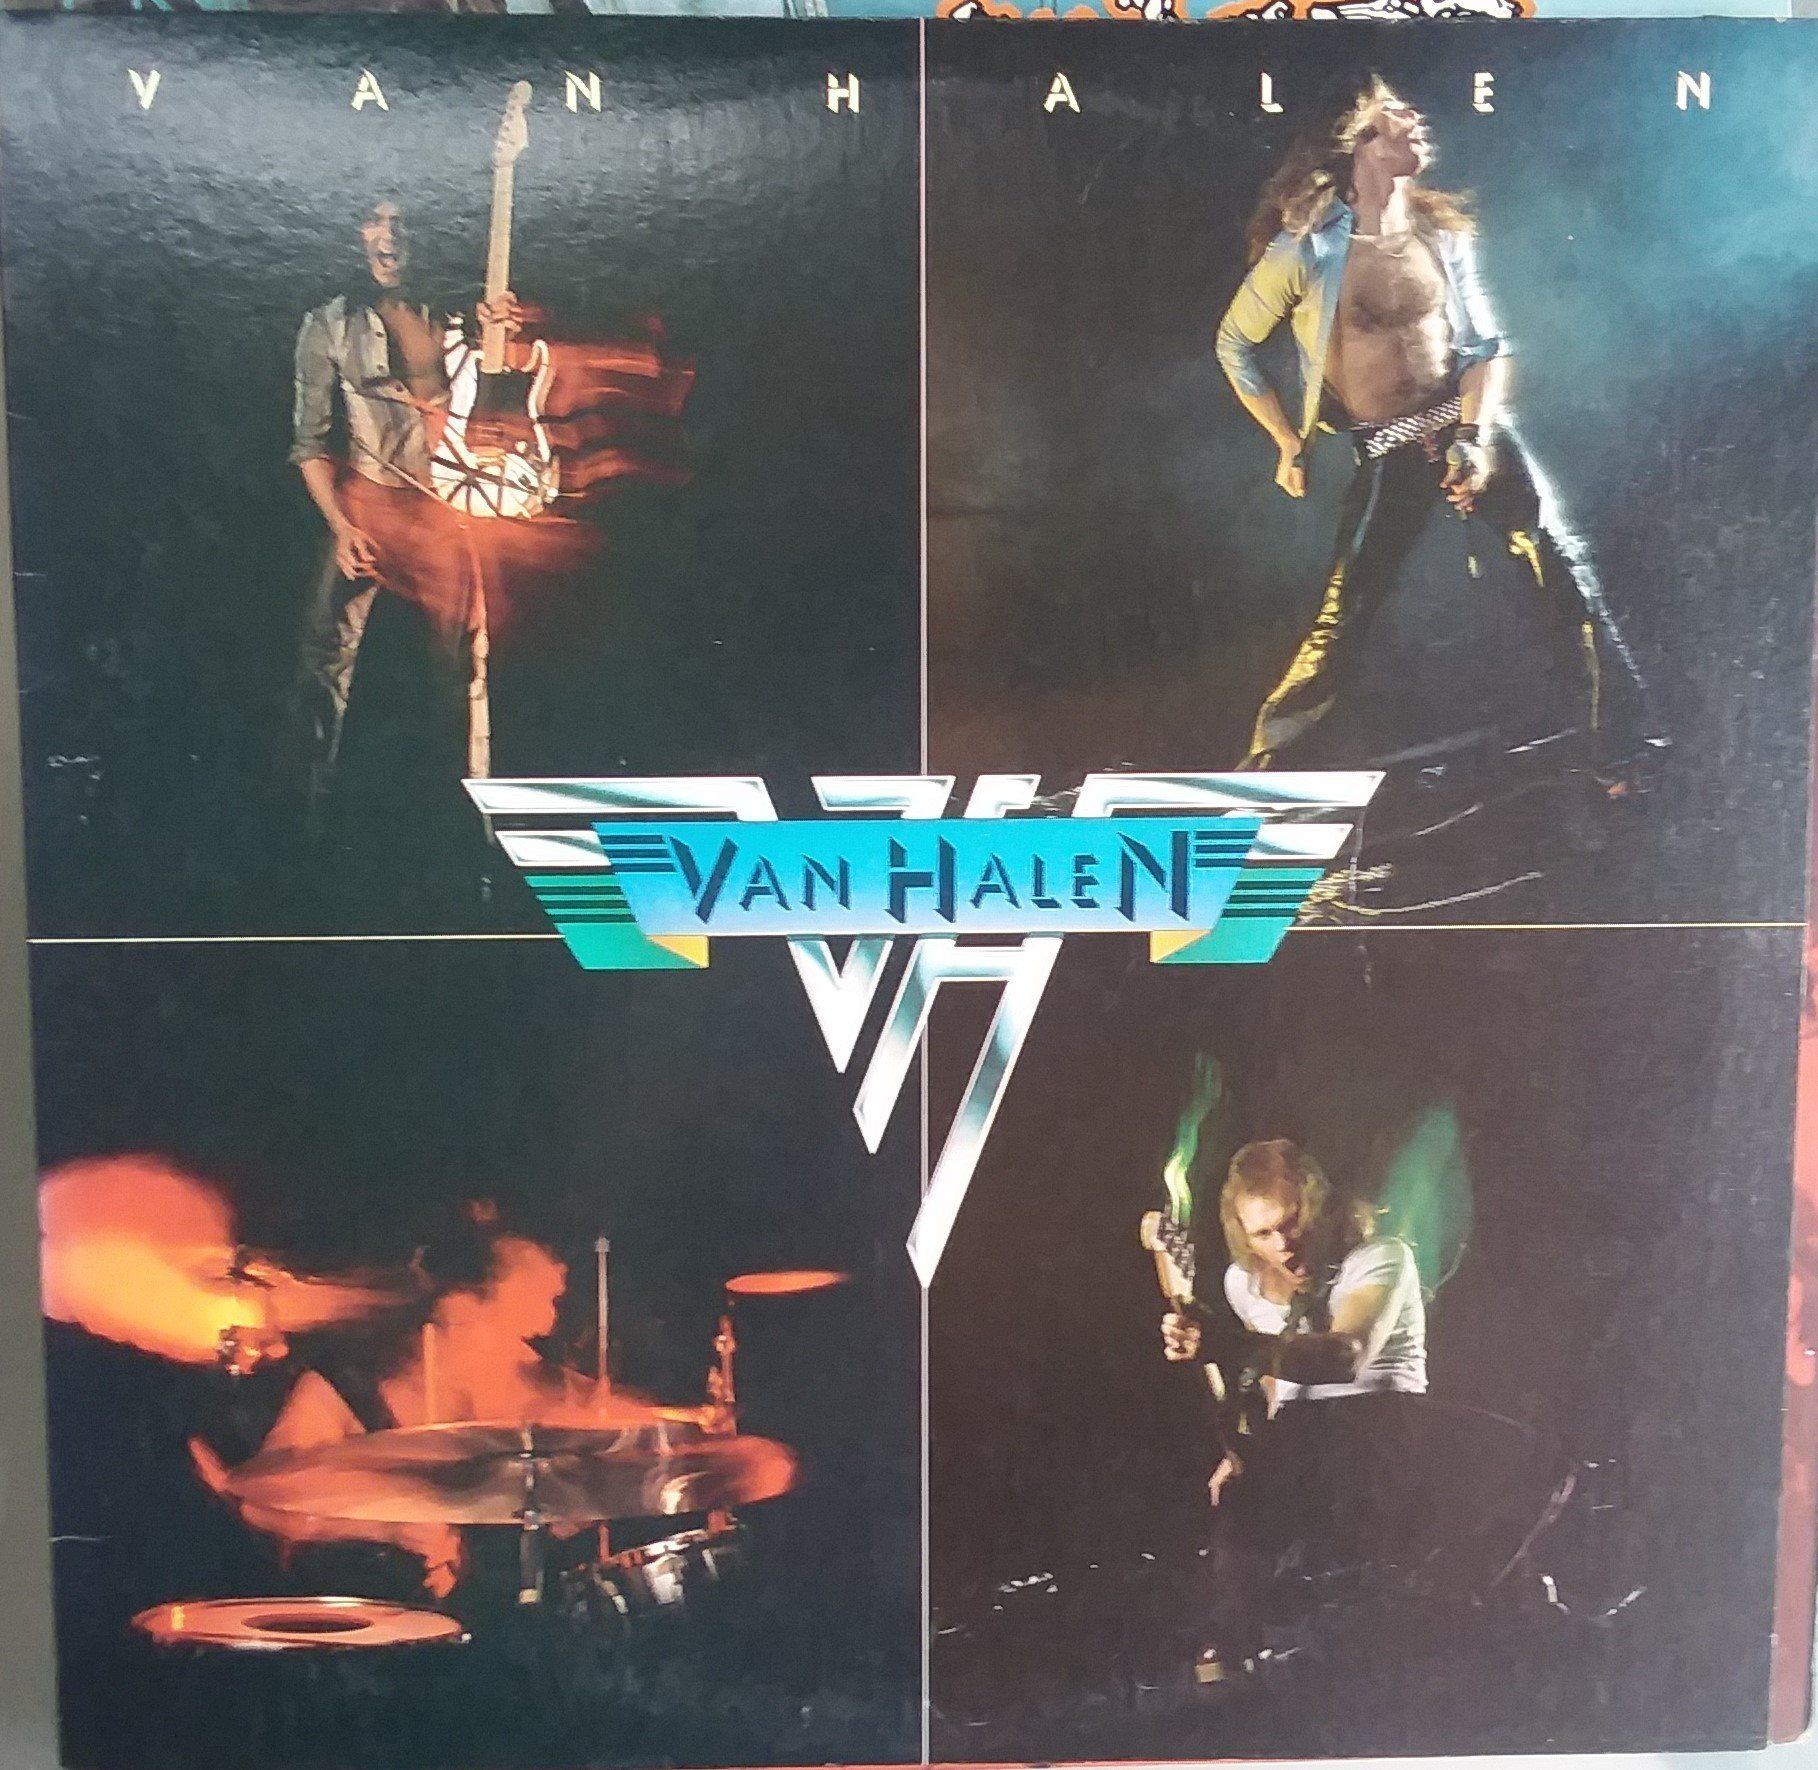 Van Halen Debut Album Vintage Record Album Vinyl Lp Classic Rock And Roll Eddie Van Halen American Rock Classic Rock And Roll New Vinyl Records Van Halen